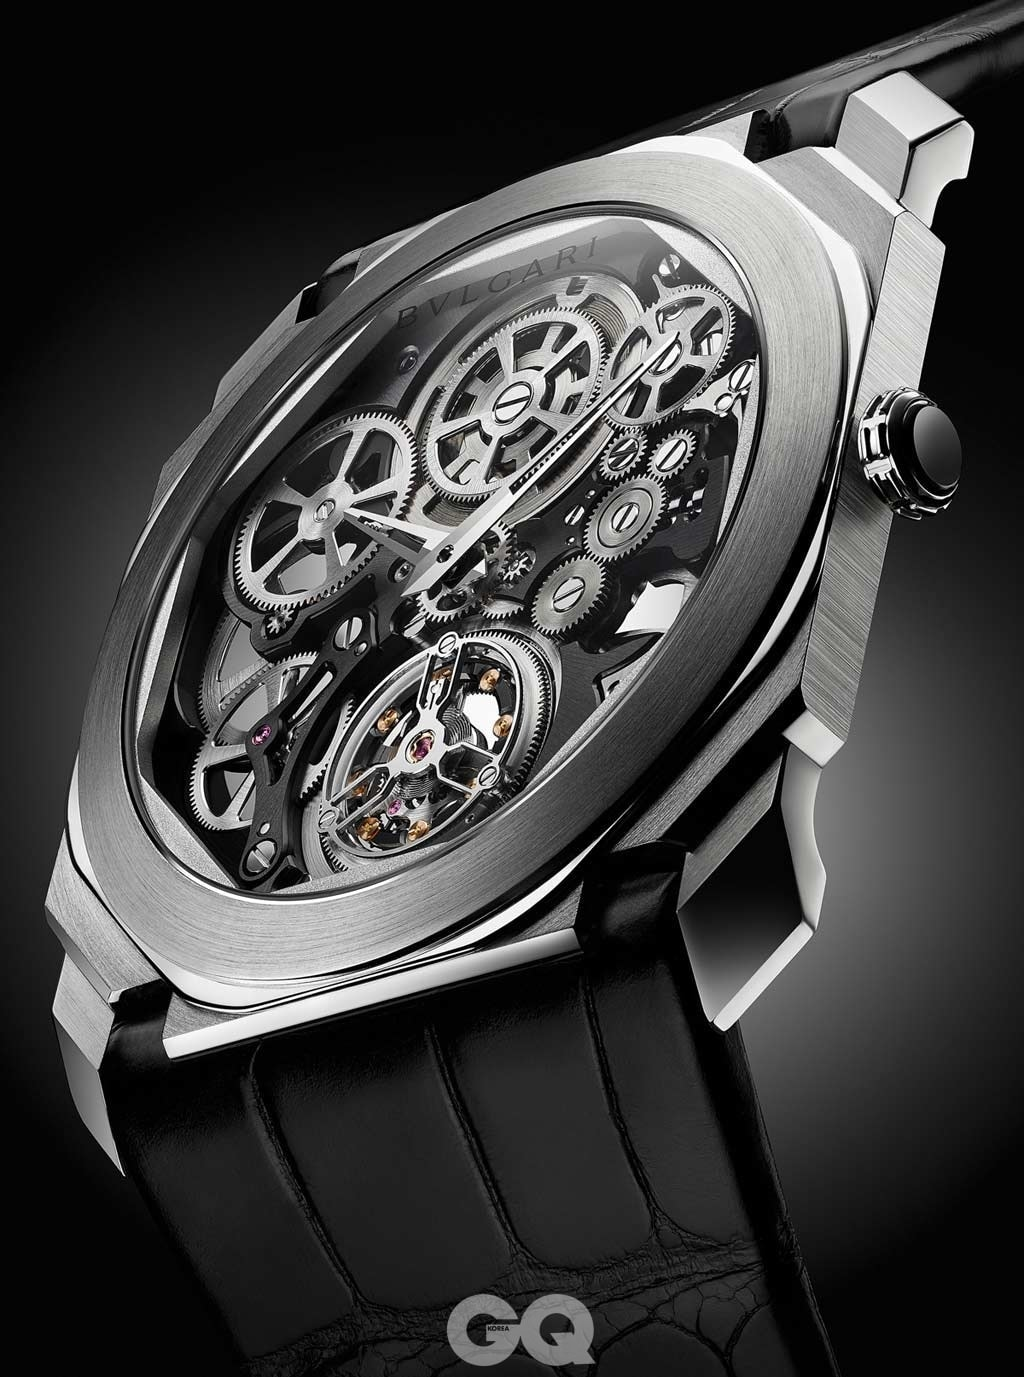 Bulgari-Octo-Finissimo-Tourbillon-Skeleton-003